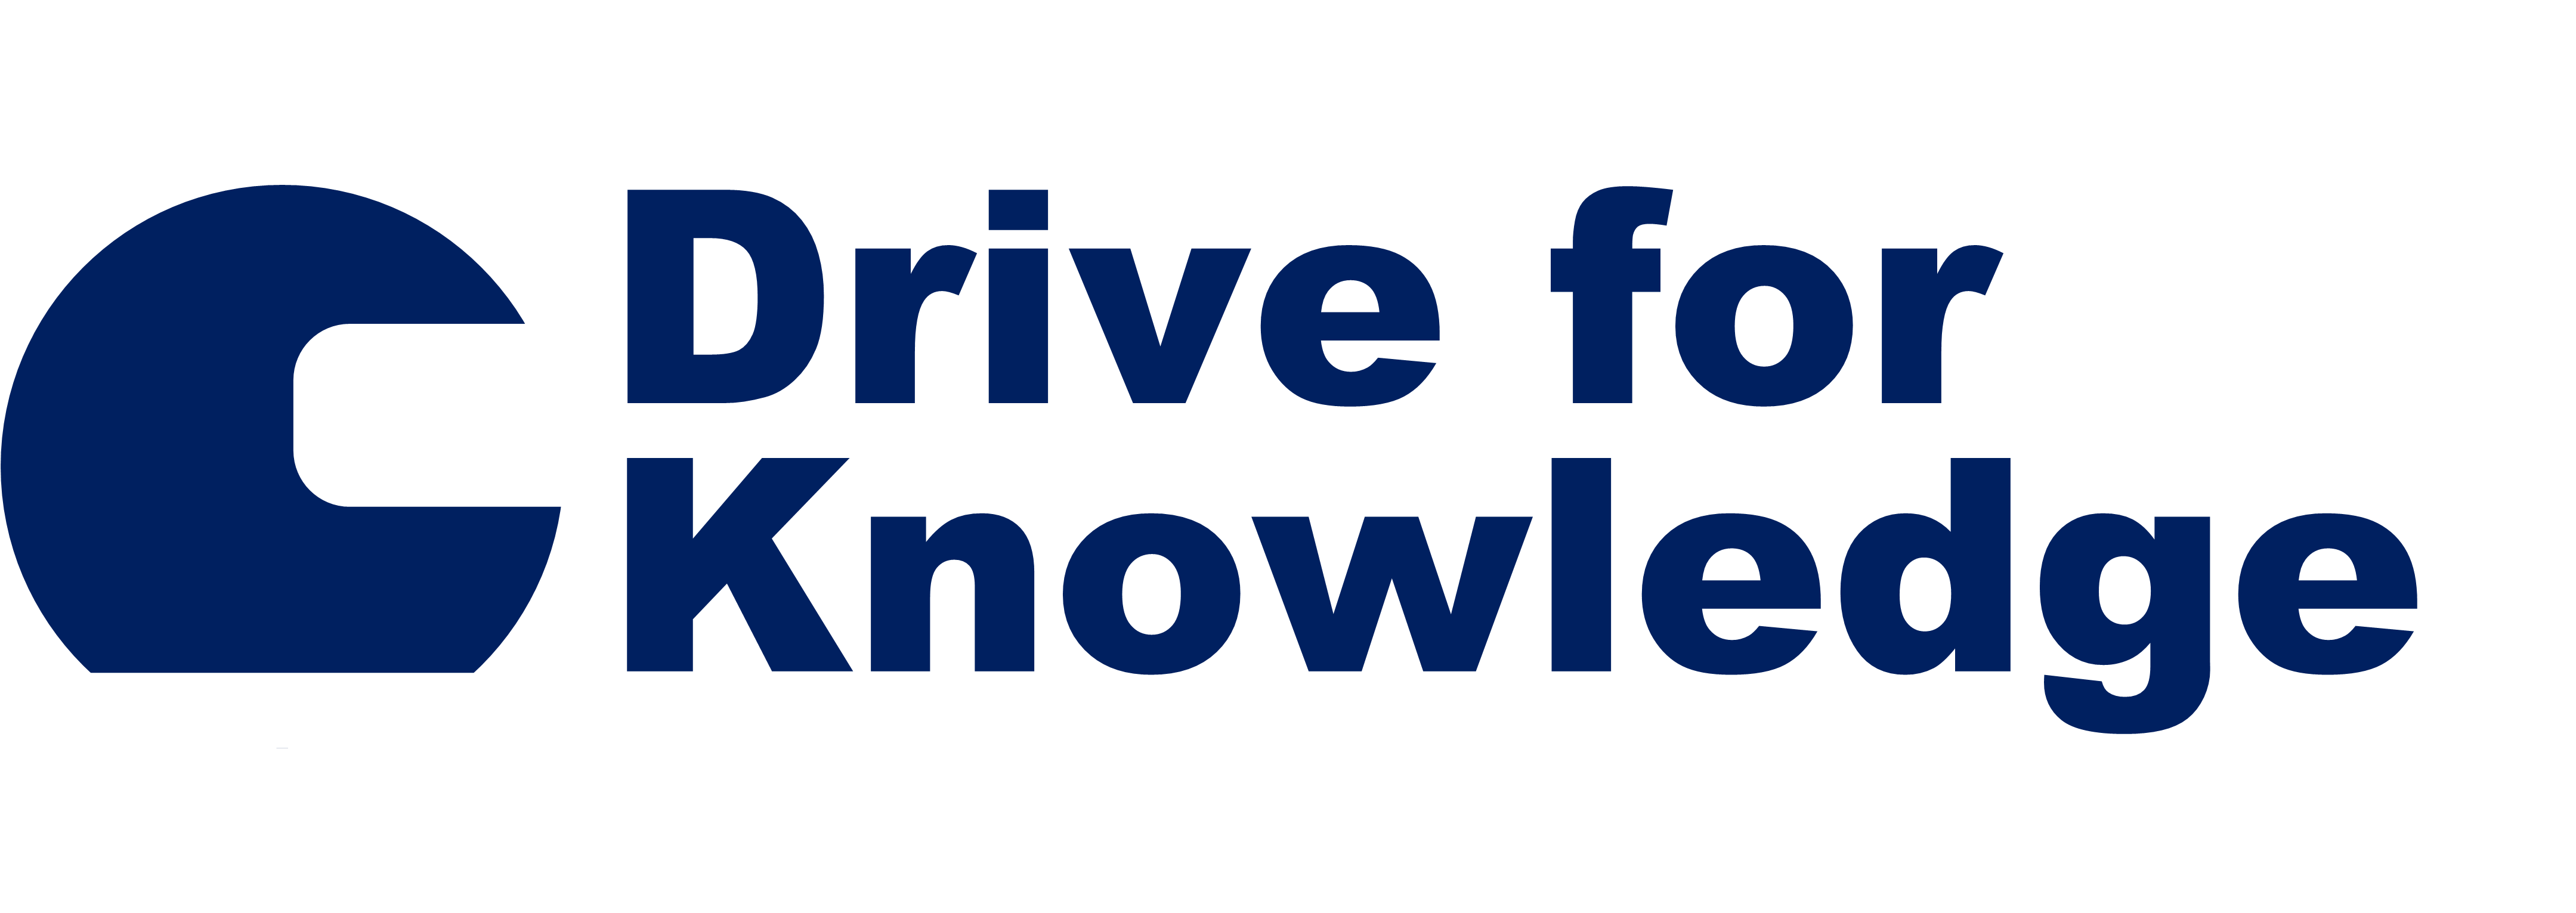 Drive for Knowledge